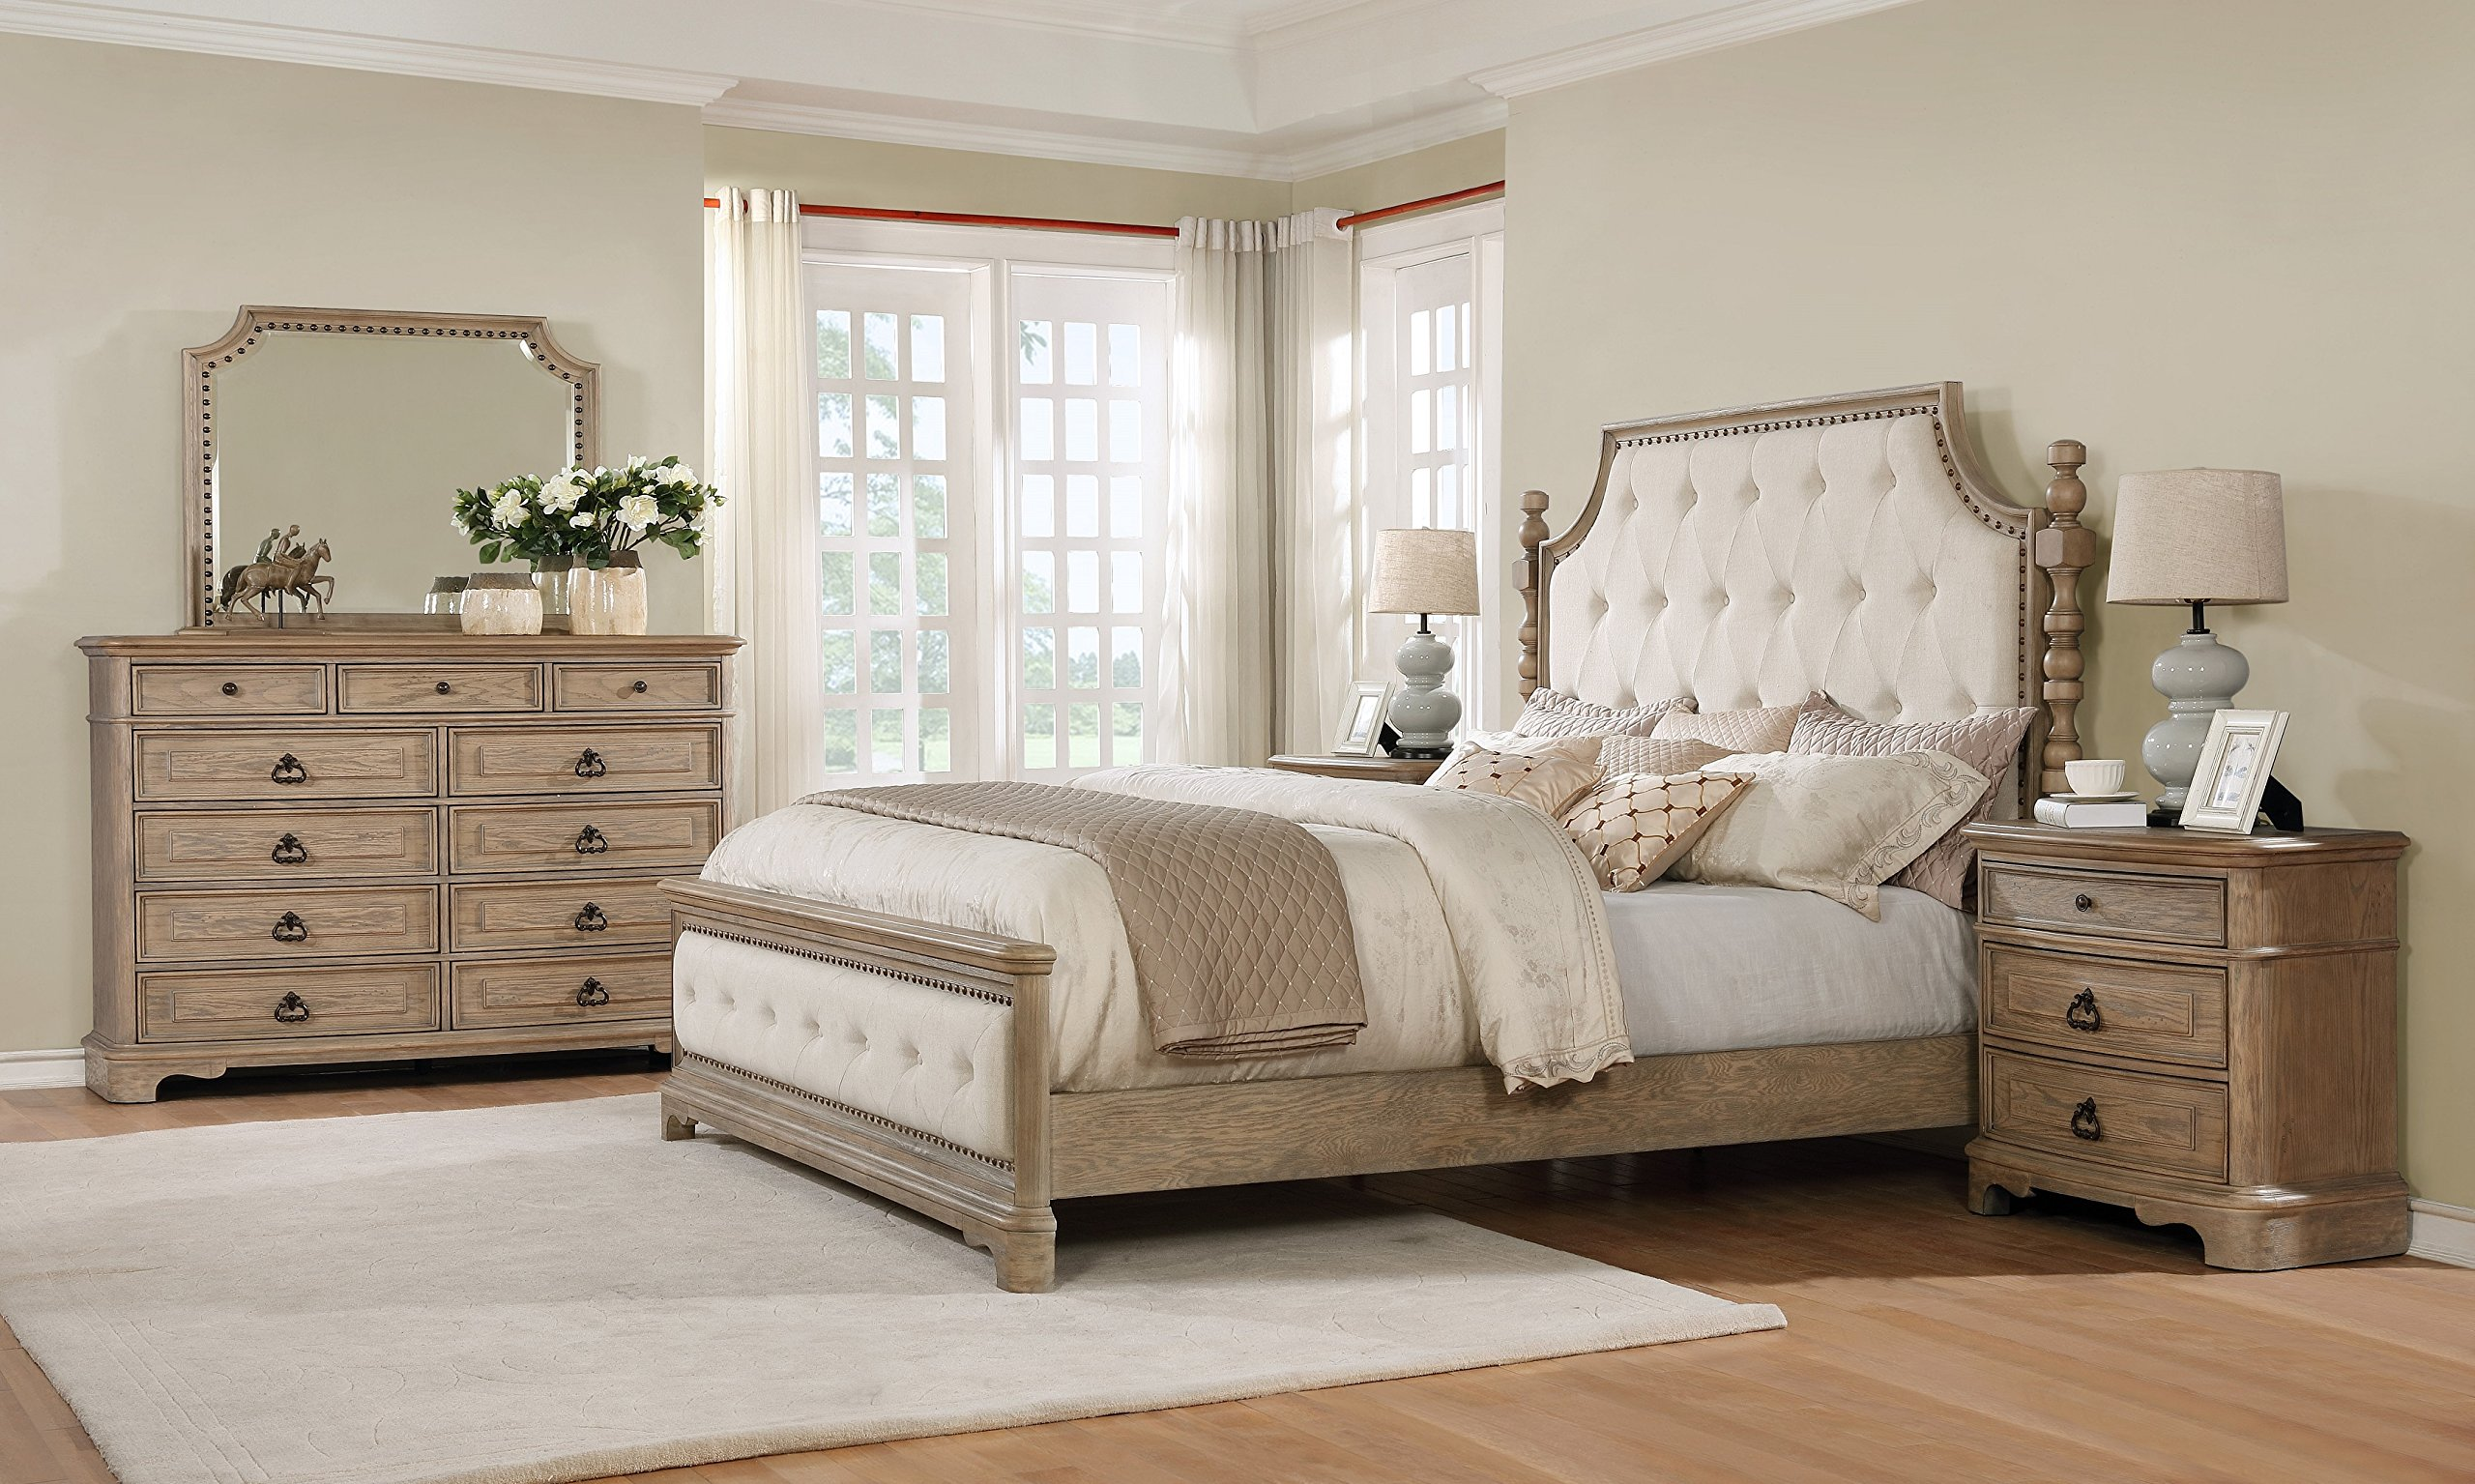 Roundhill Furniture B296KDMN2 Piraeus 296 Solid Wood Construction Bedroom Set with King Size Bed, Dresser 2, Mirror And 2 Night Stand